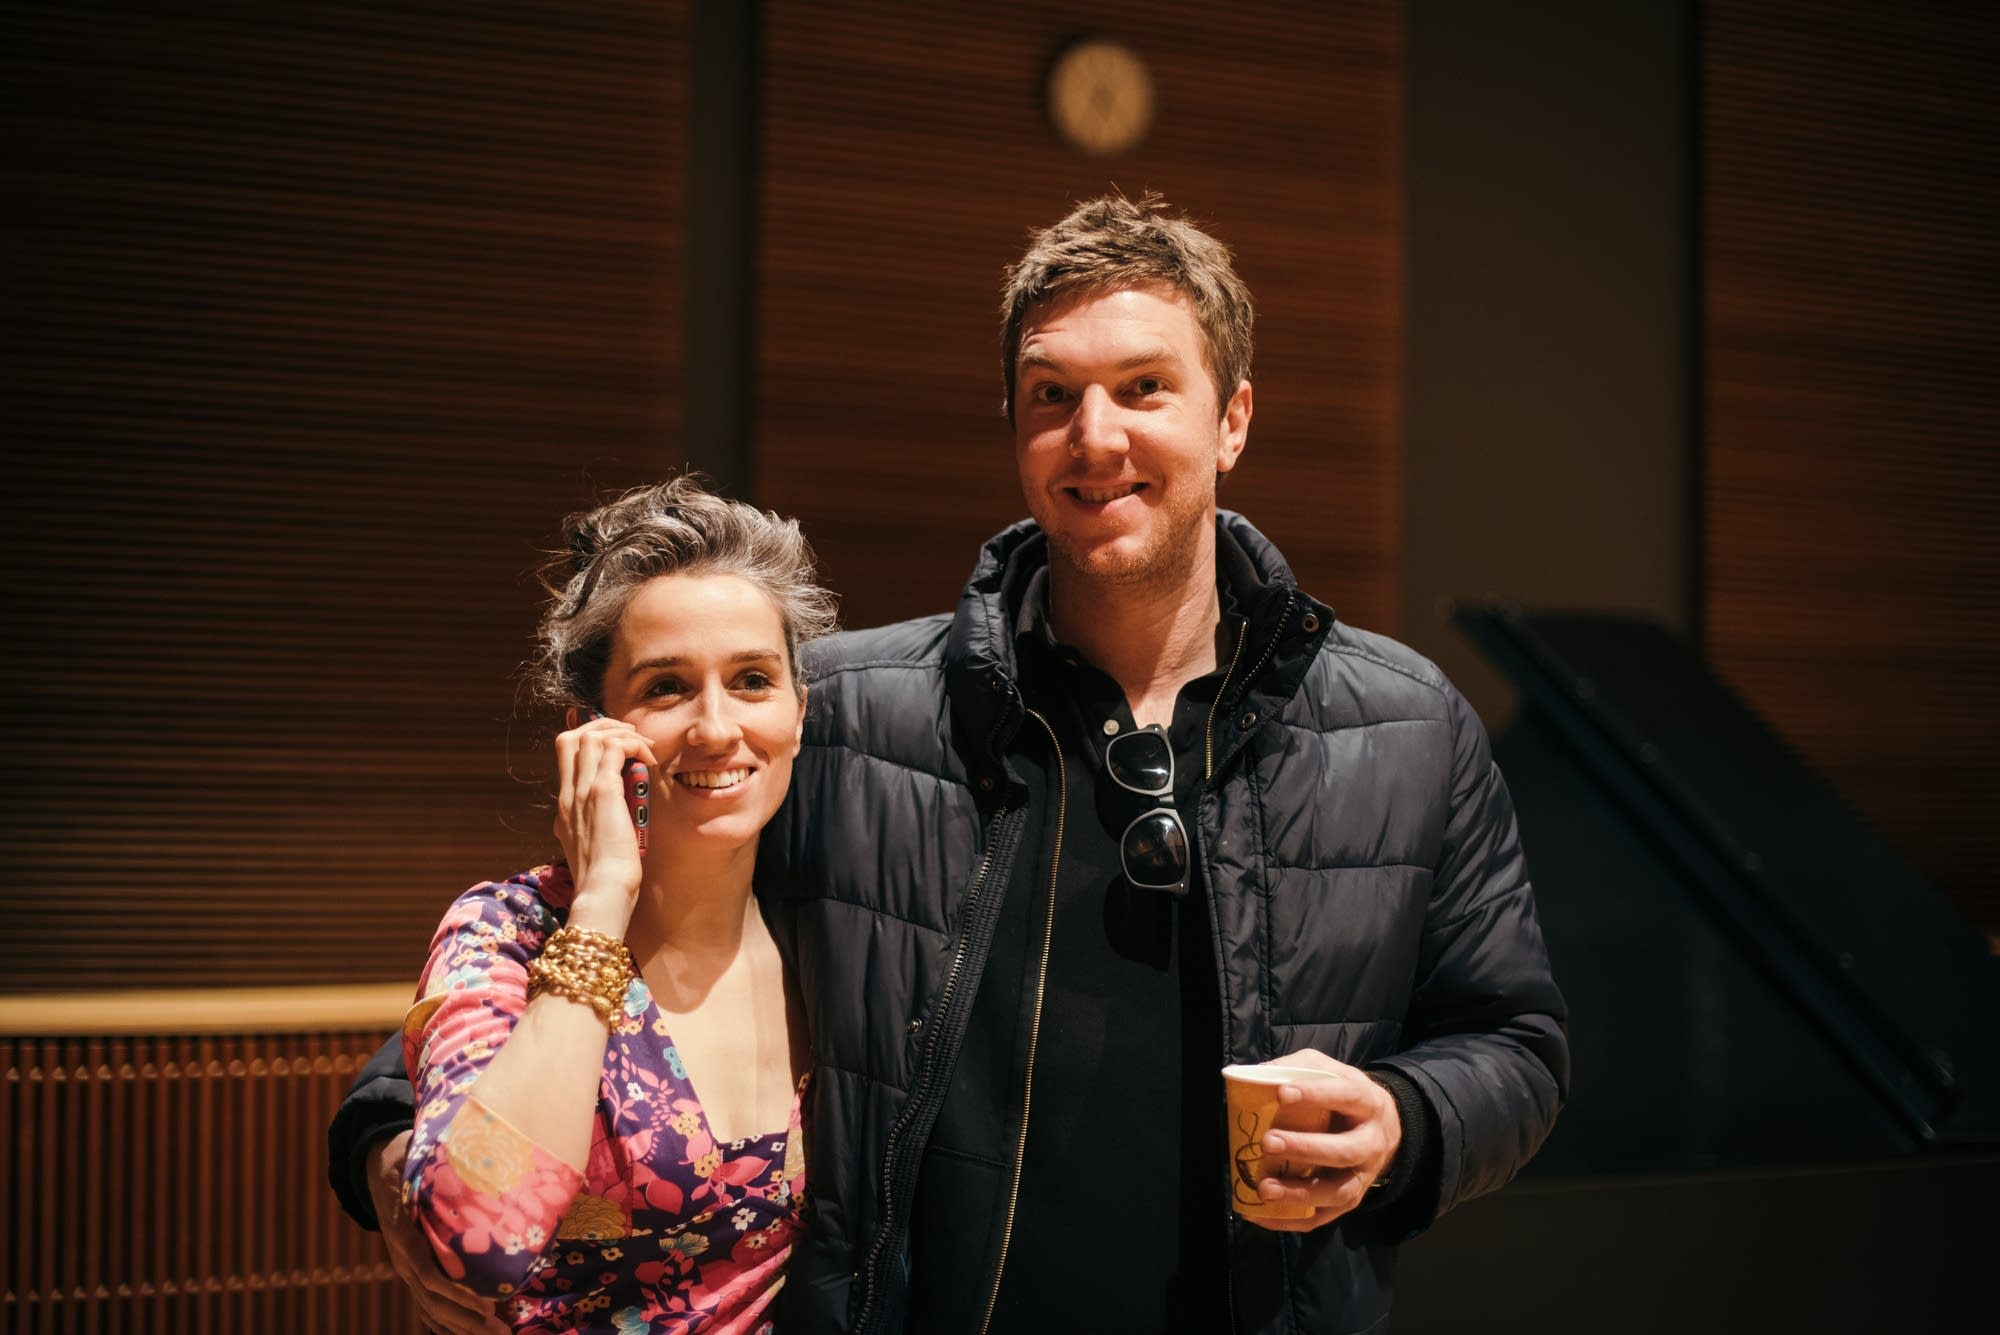 Hamilton Leithauser and his wife, Anna Stumpf, in The Current studio.